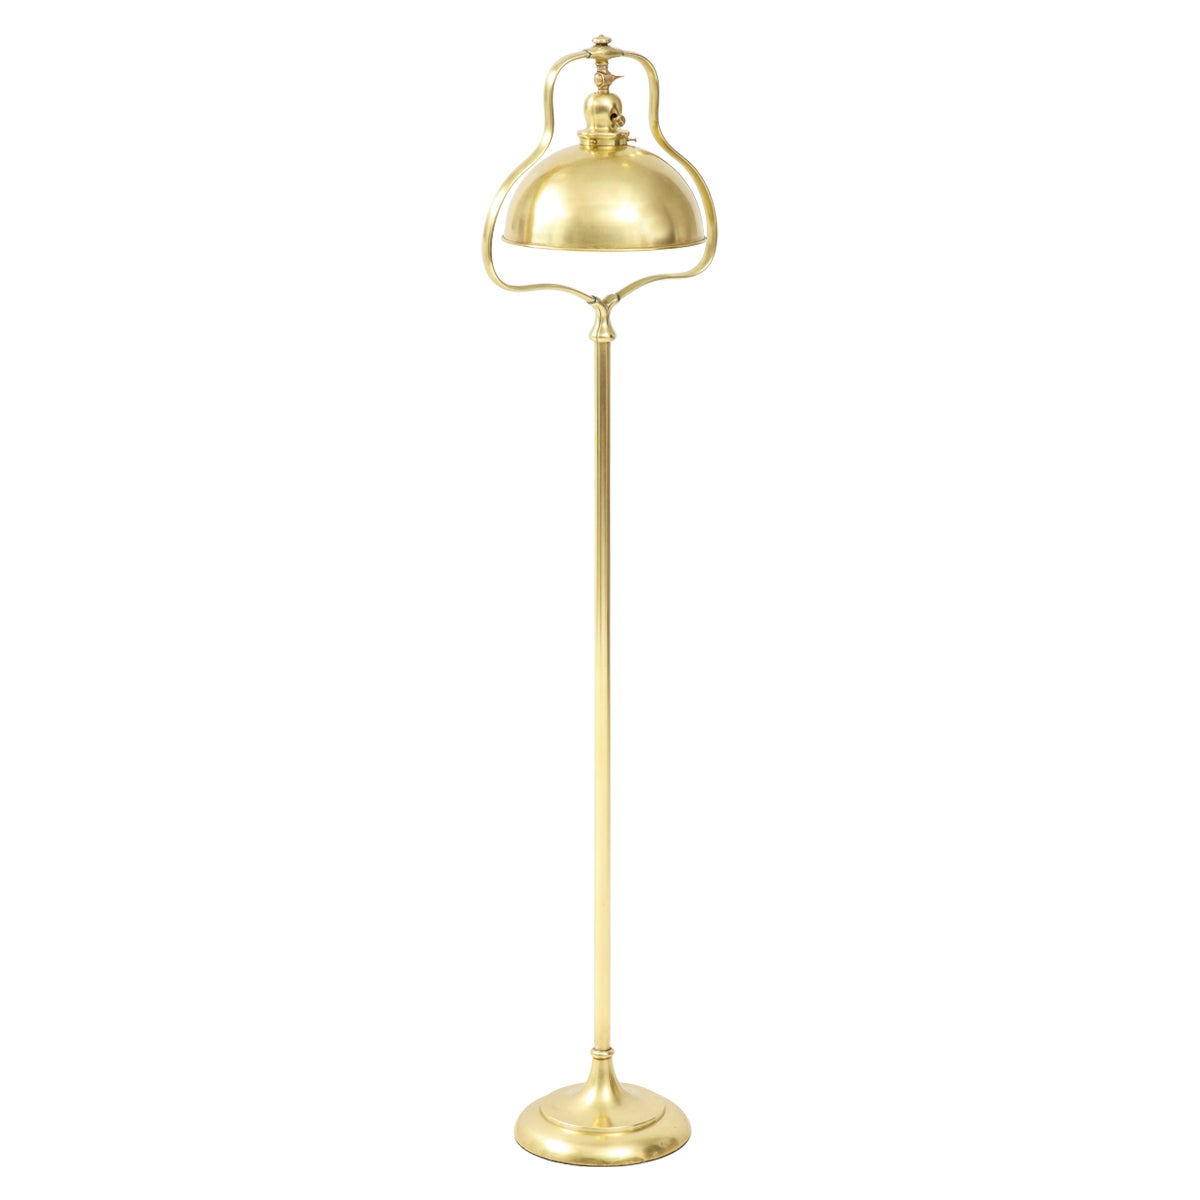 1940s French Brass Floor Lamp